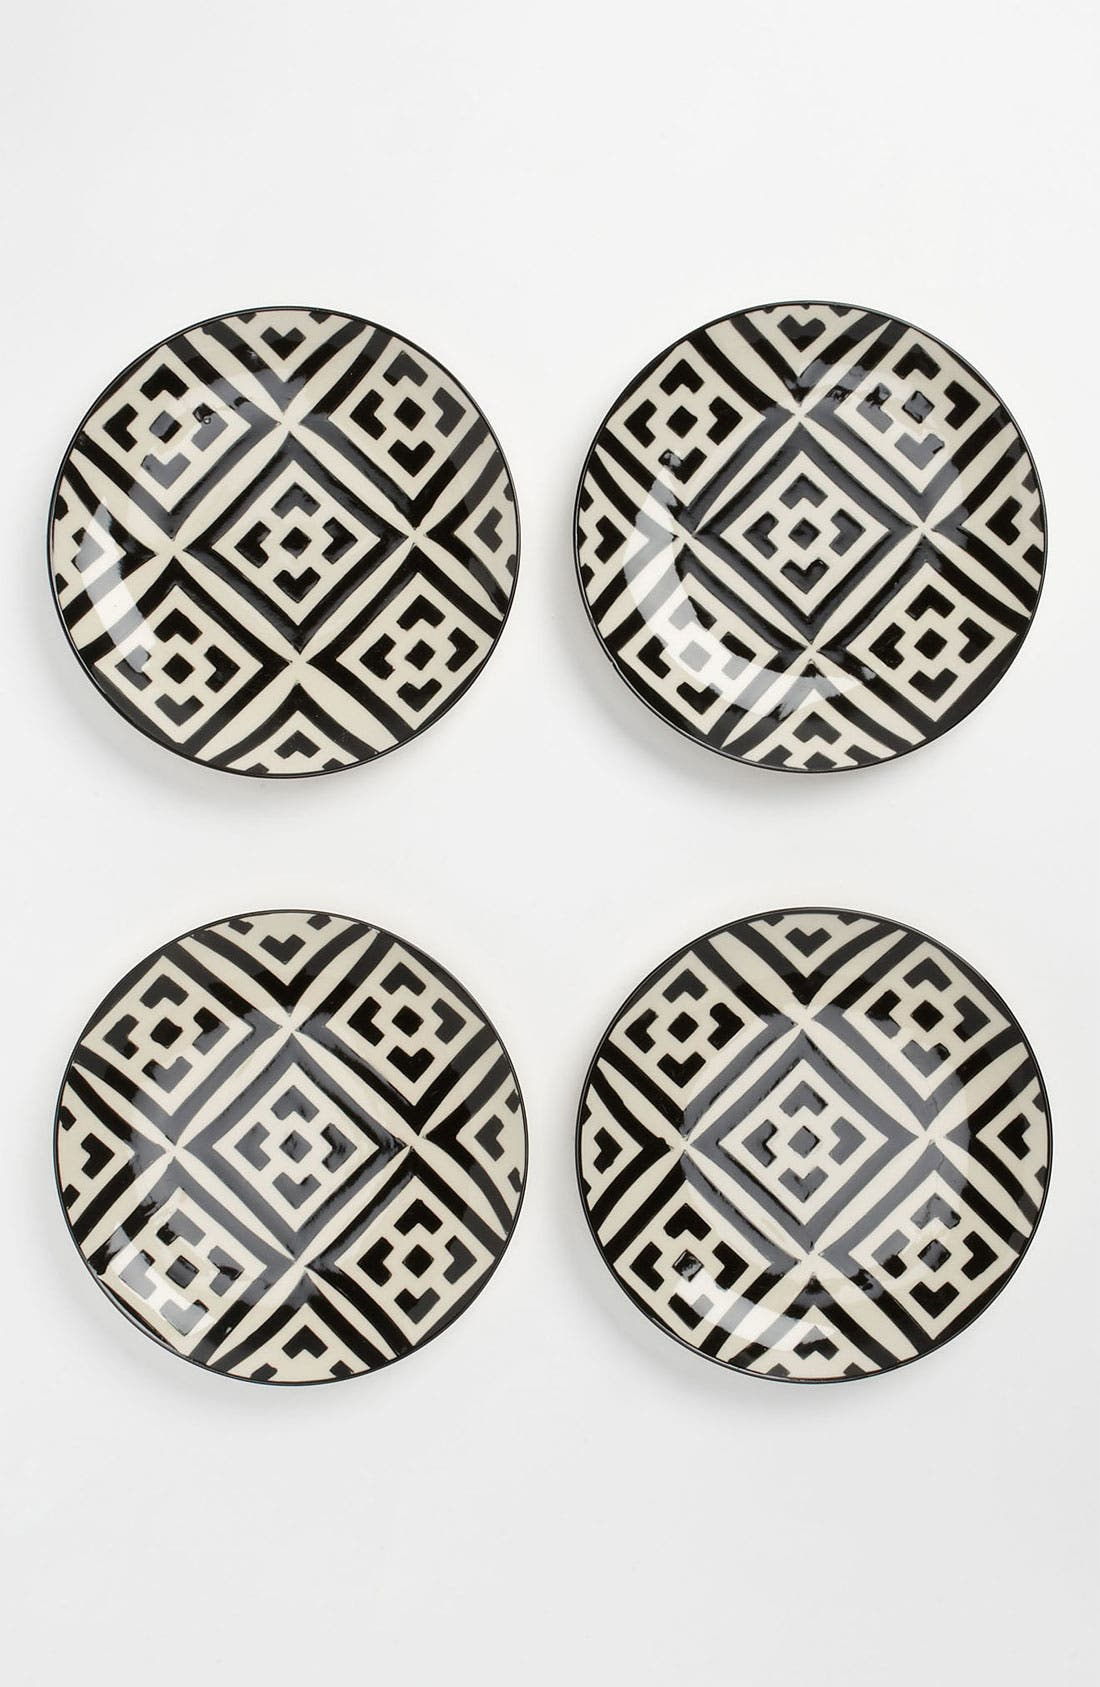 Alternate Image 1 Selected - Black & White Dessert Plates (Set of 4)